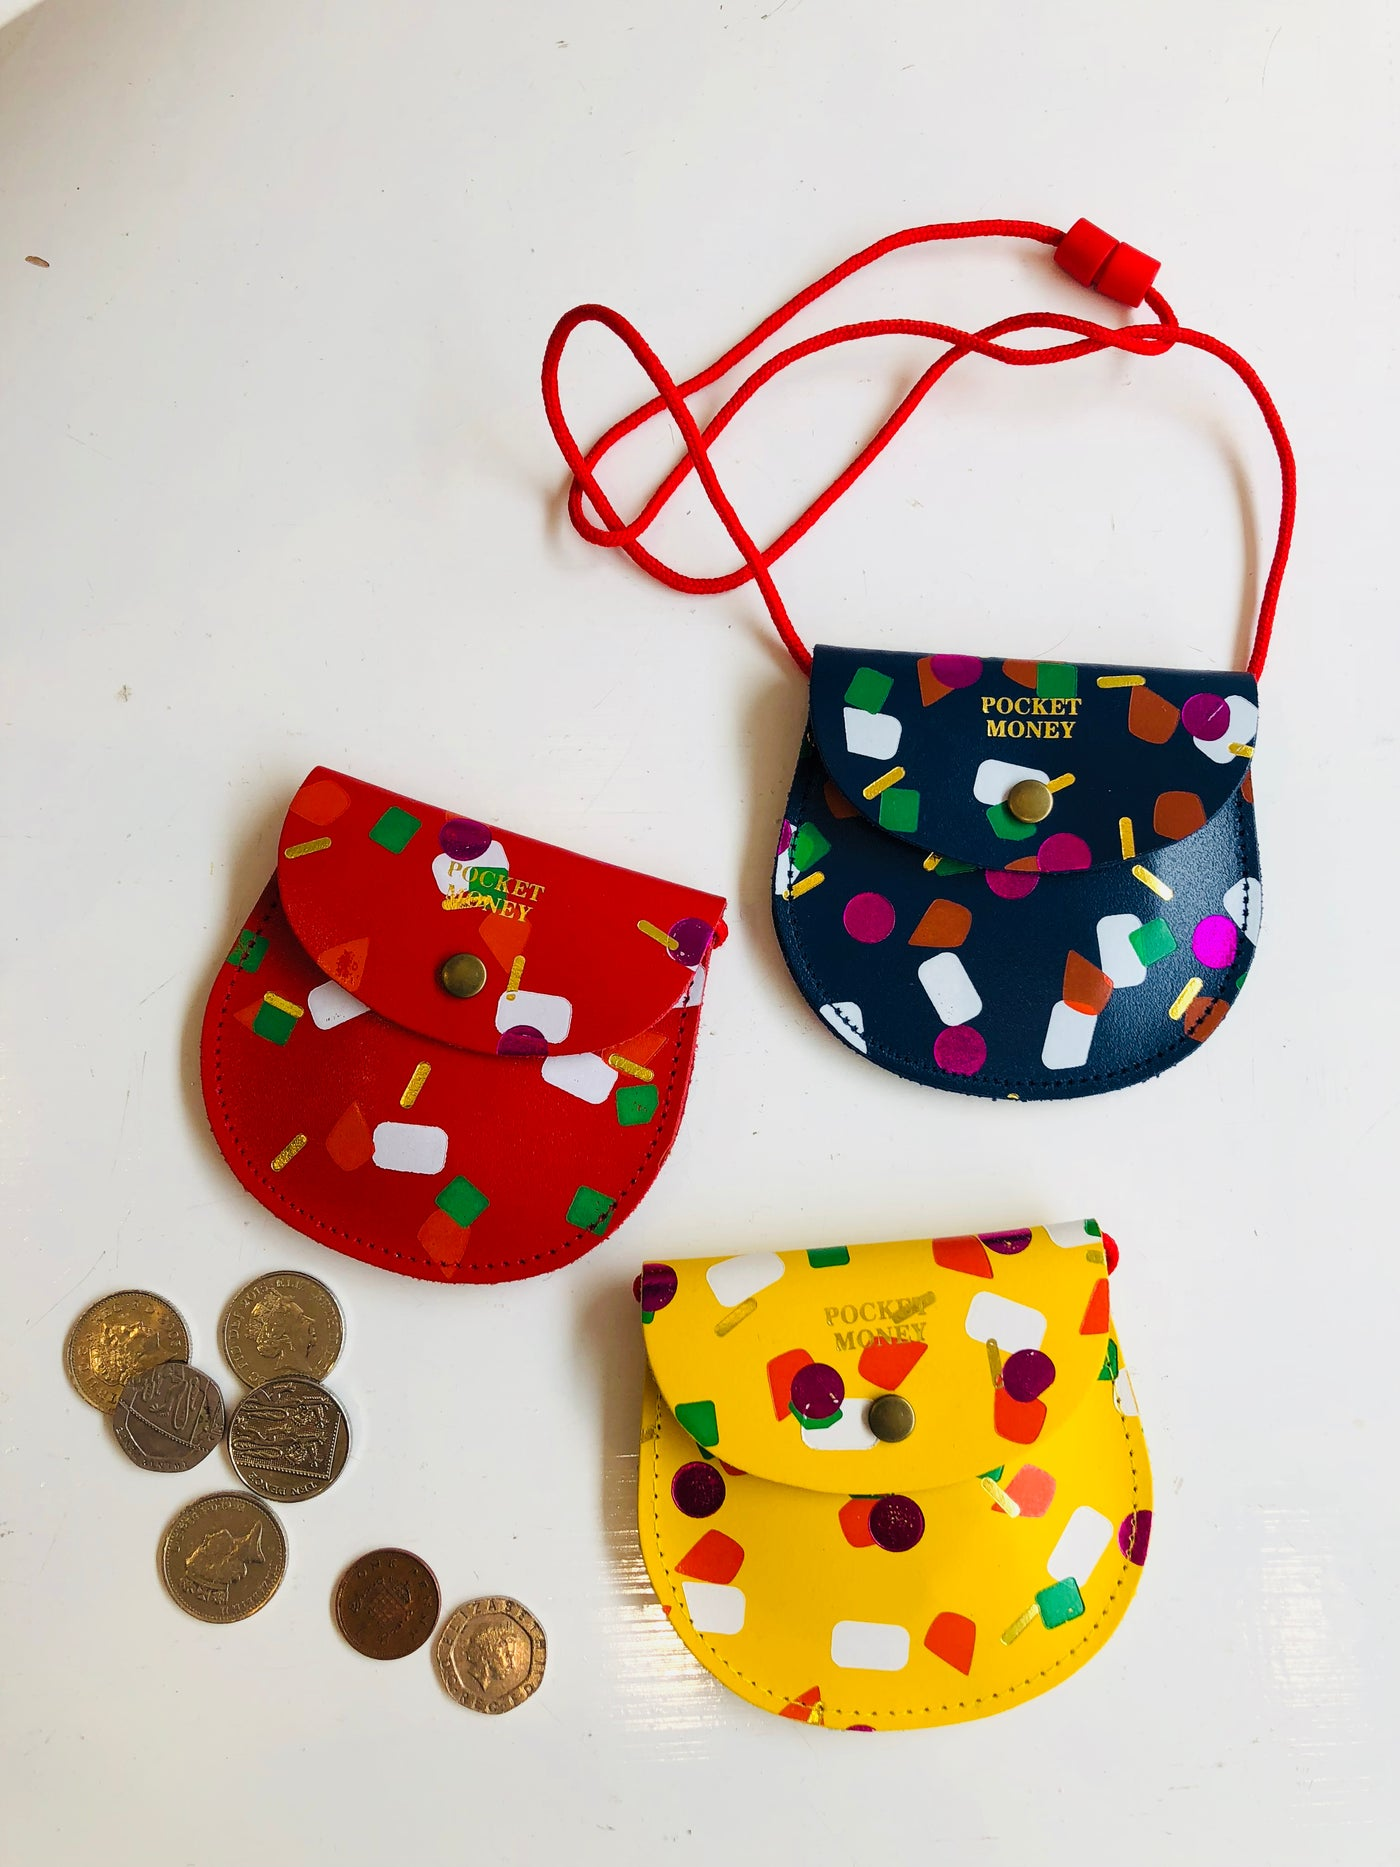 ARK Tutti Frutti Pocket Money Purse